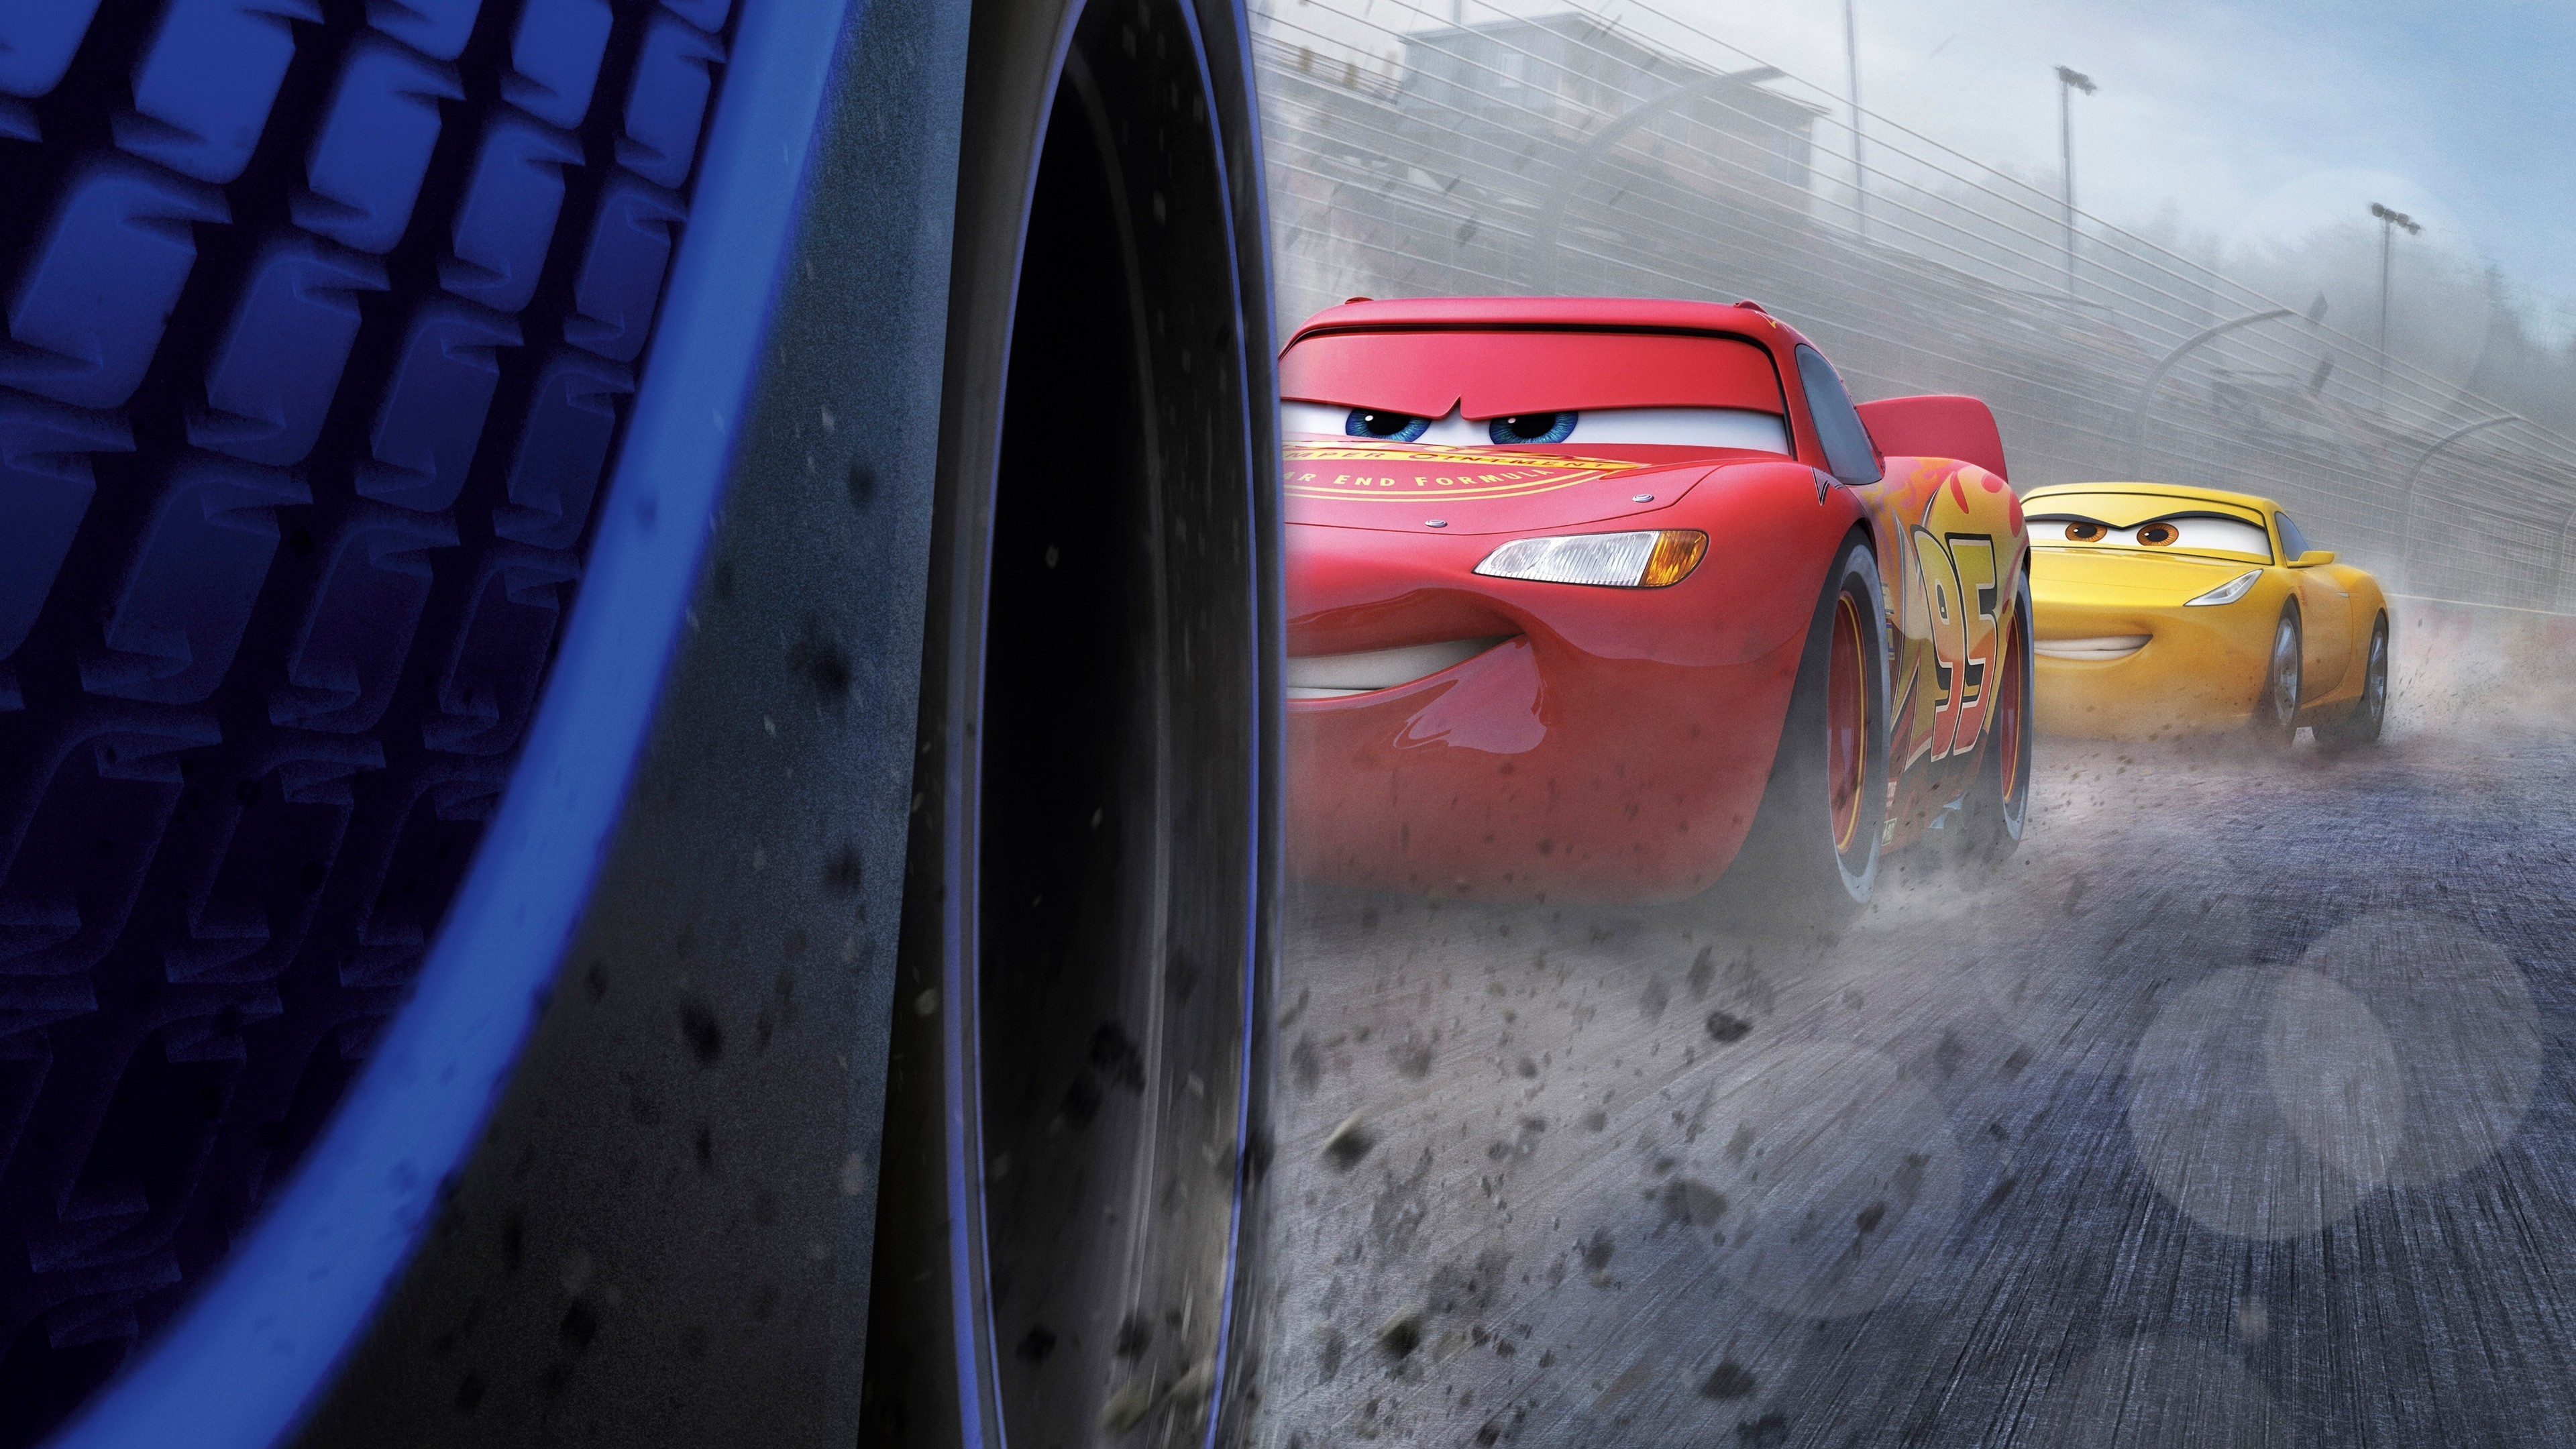 Res: 3840x2160, Cars 3, Lightning Mcqueen, Animation